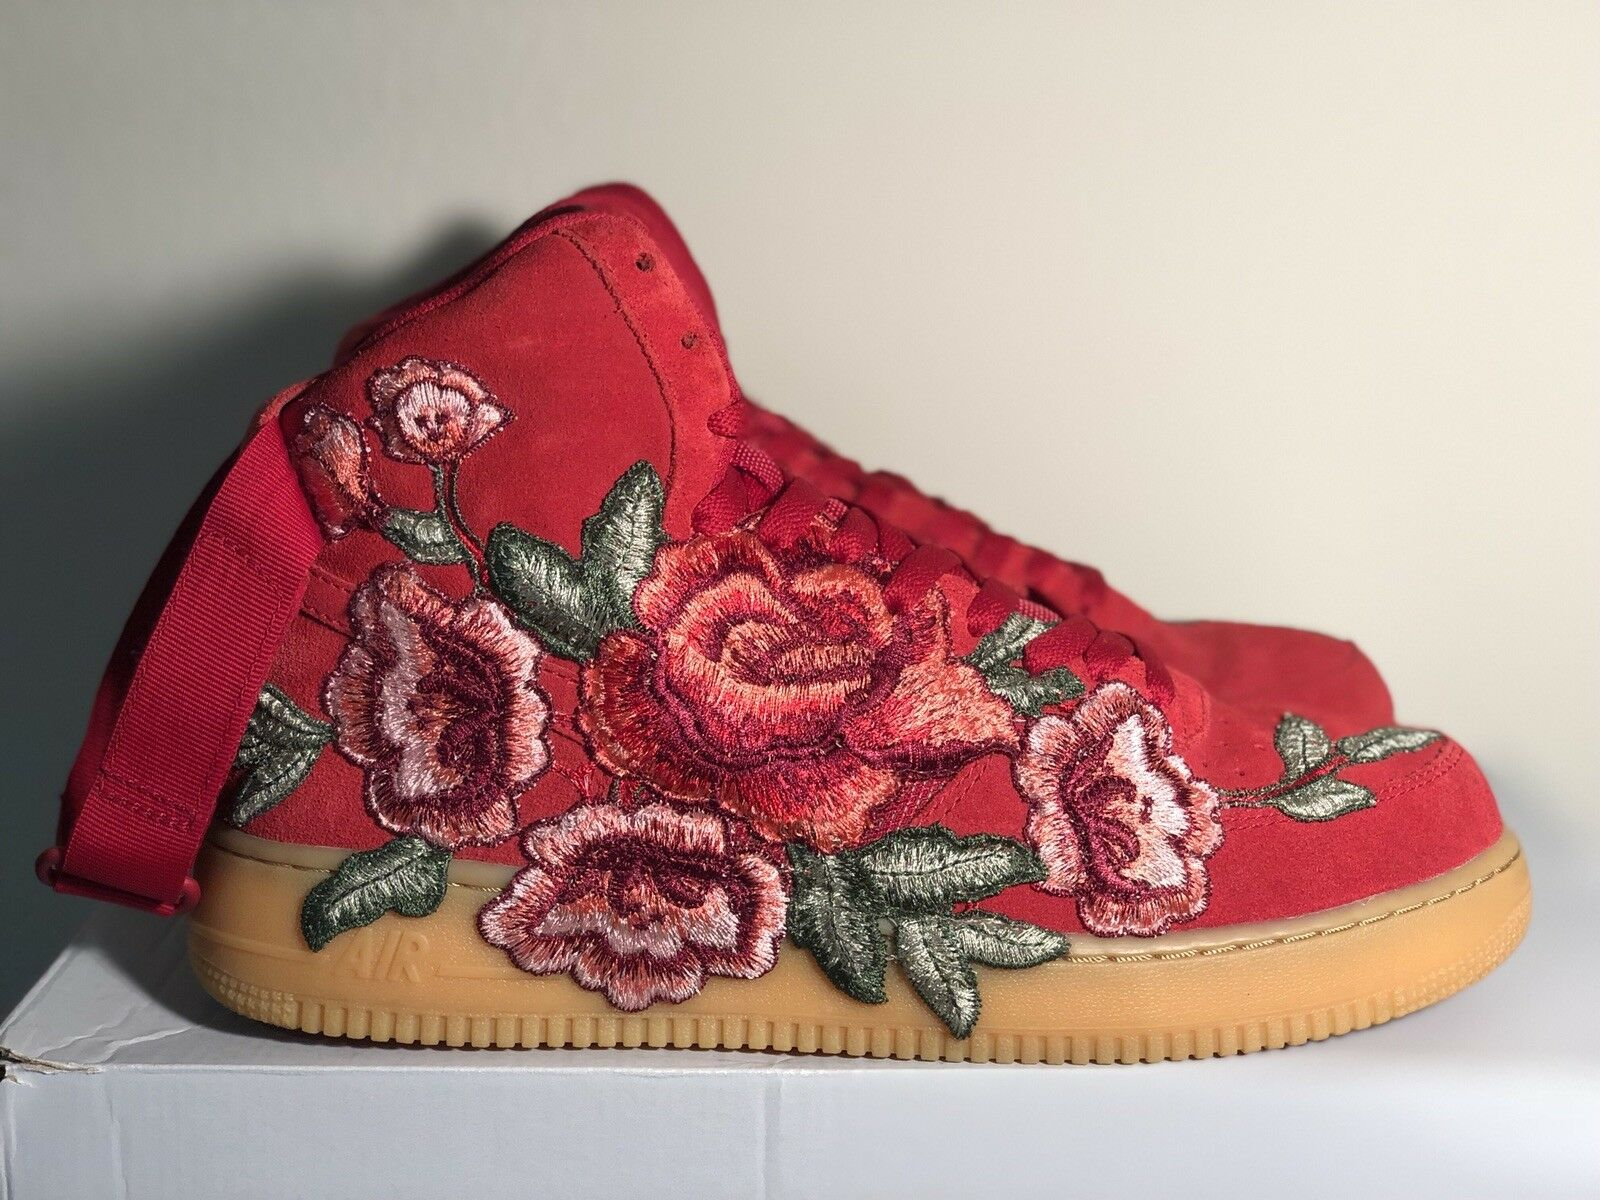 NIKE Air Force One High Custom Floral Embroidered 1 of 1 Comfortable Comfortable and good-looking